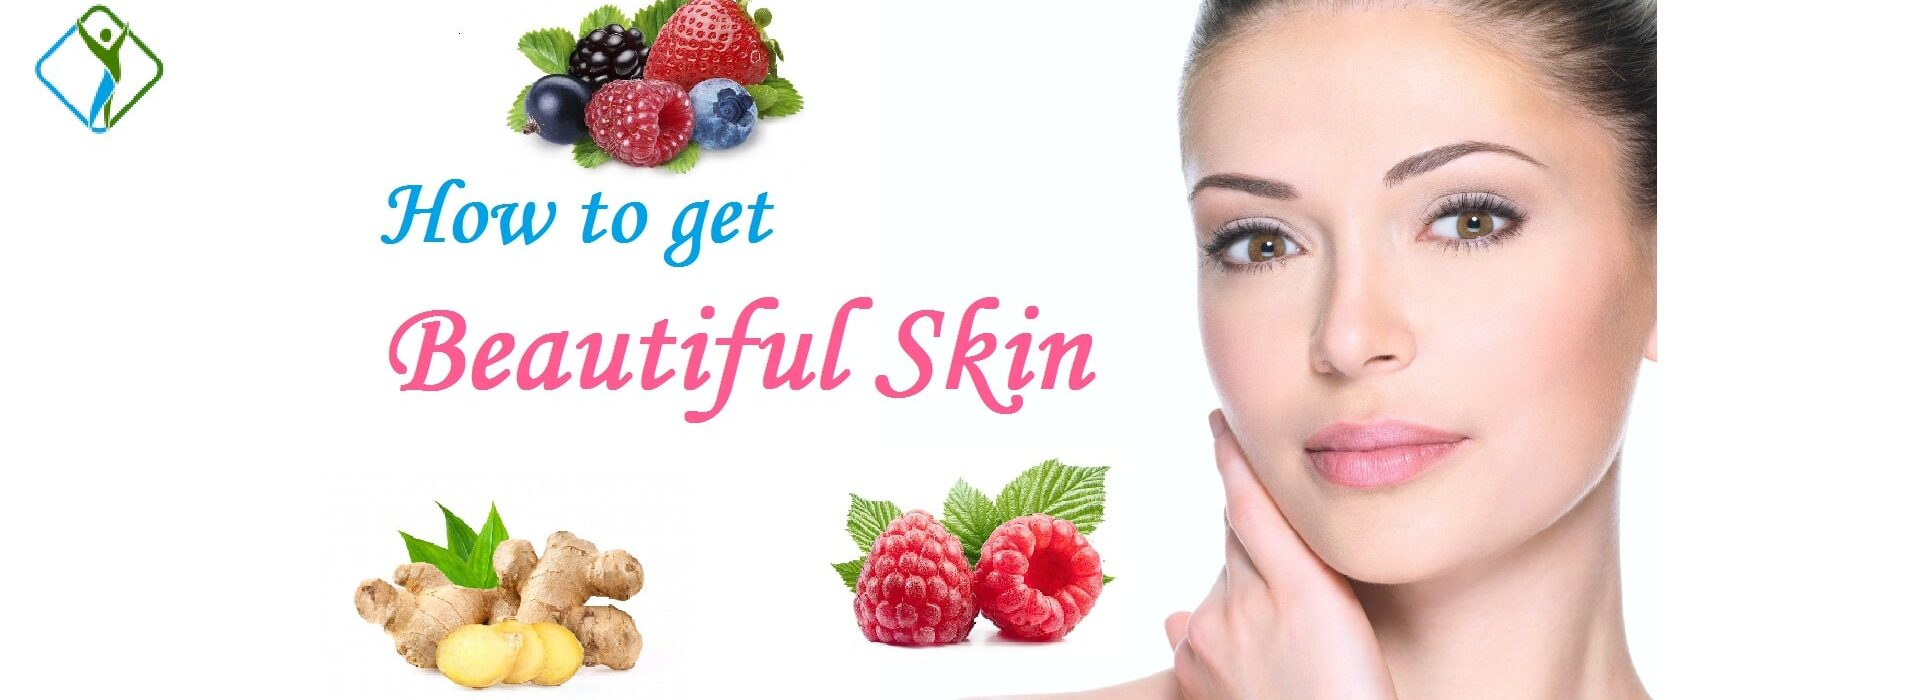 9-Best-Tips-for-getting-beautiful-and-Glowing-Skin-at-the-healthy-body